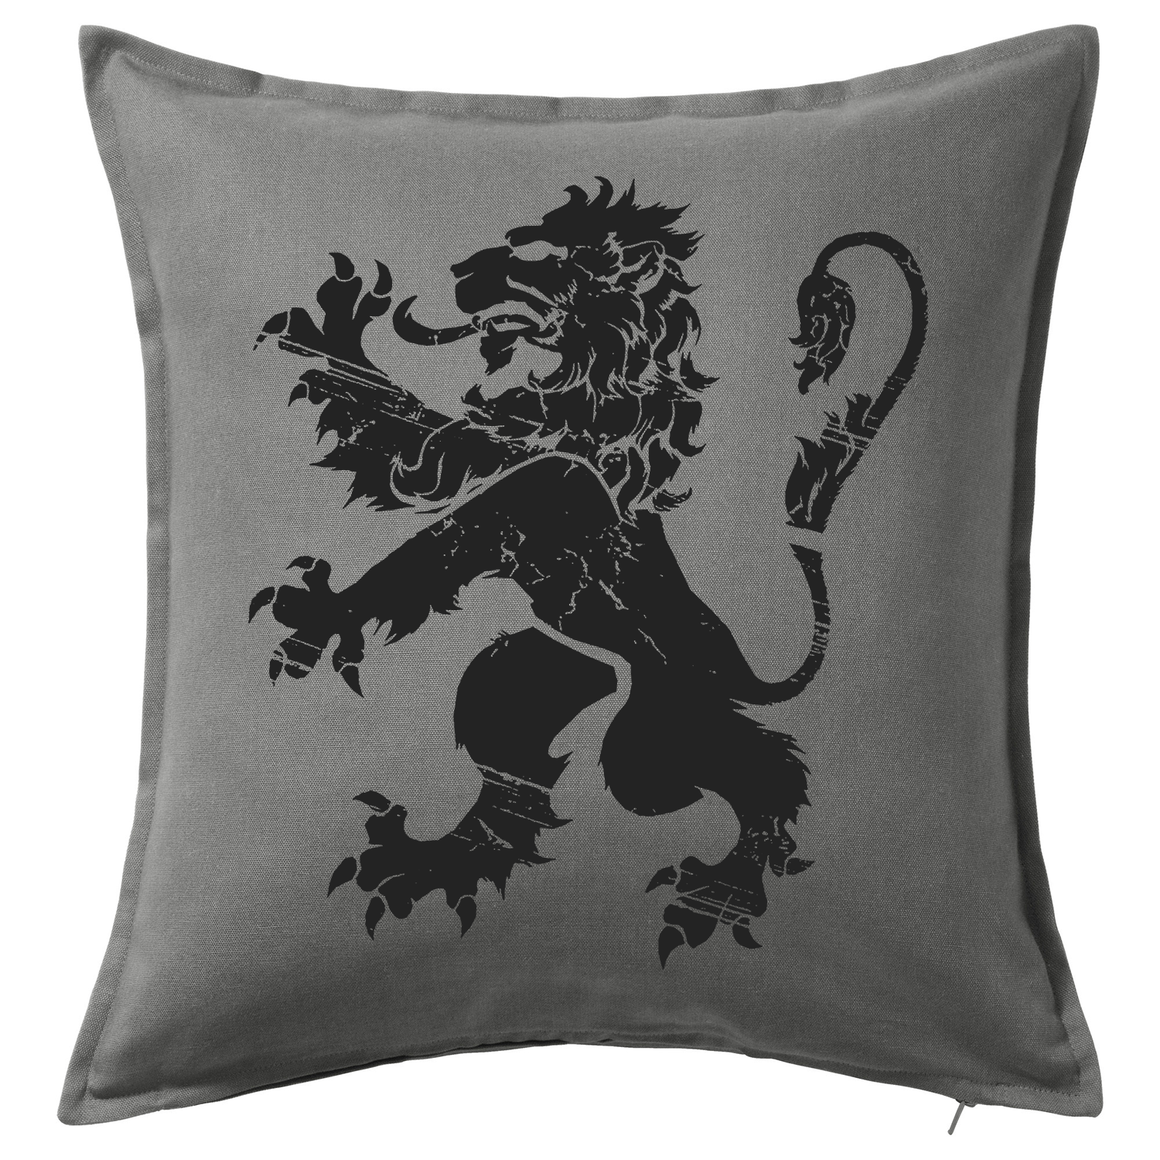 Lion Royalty Cushion Cover